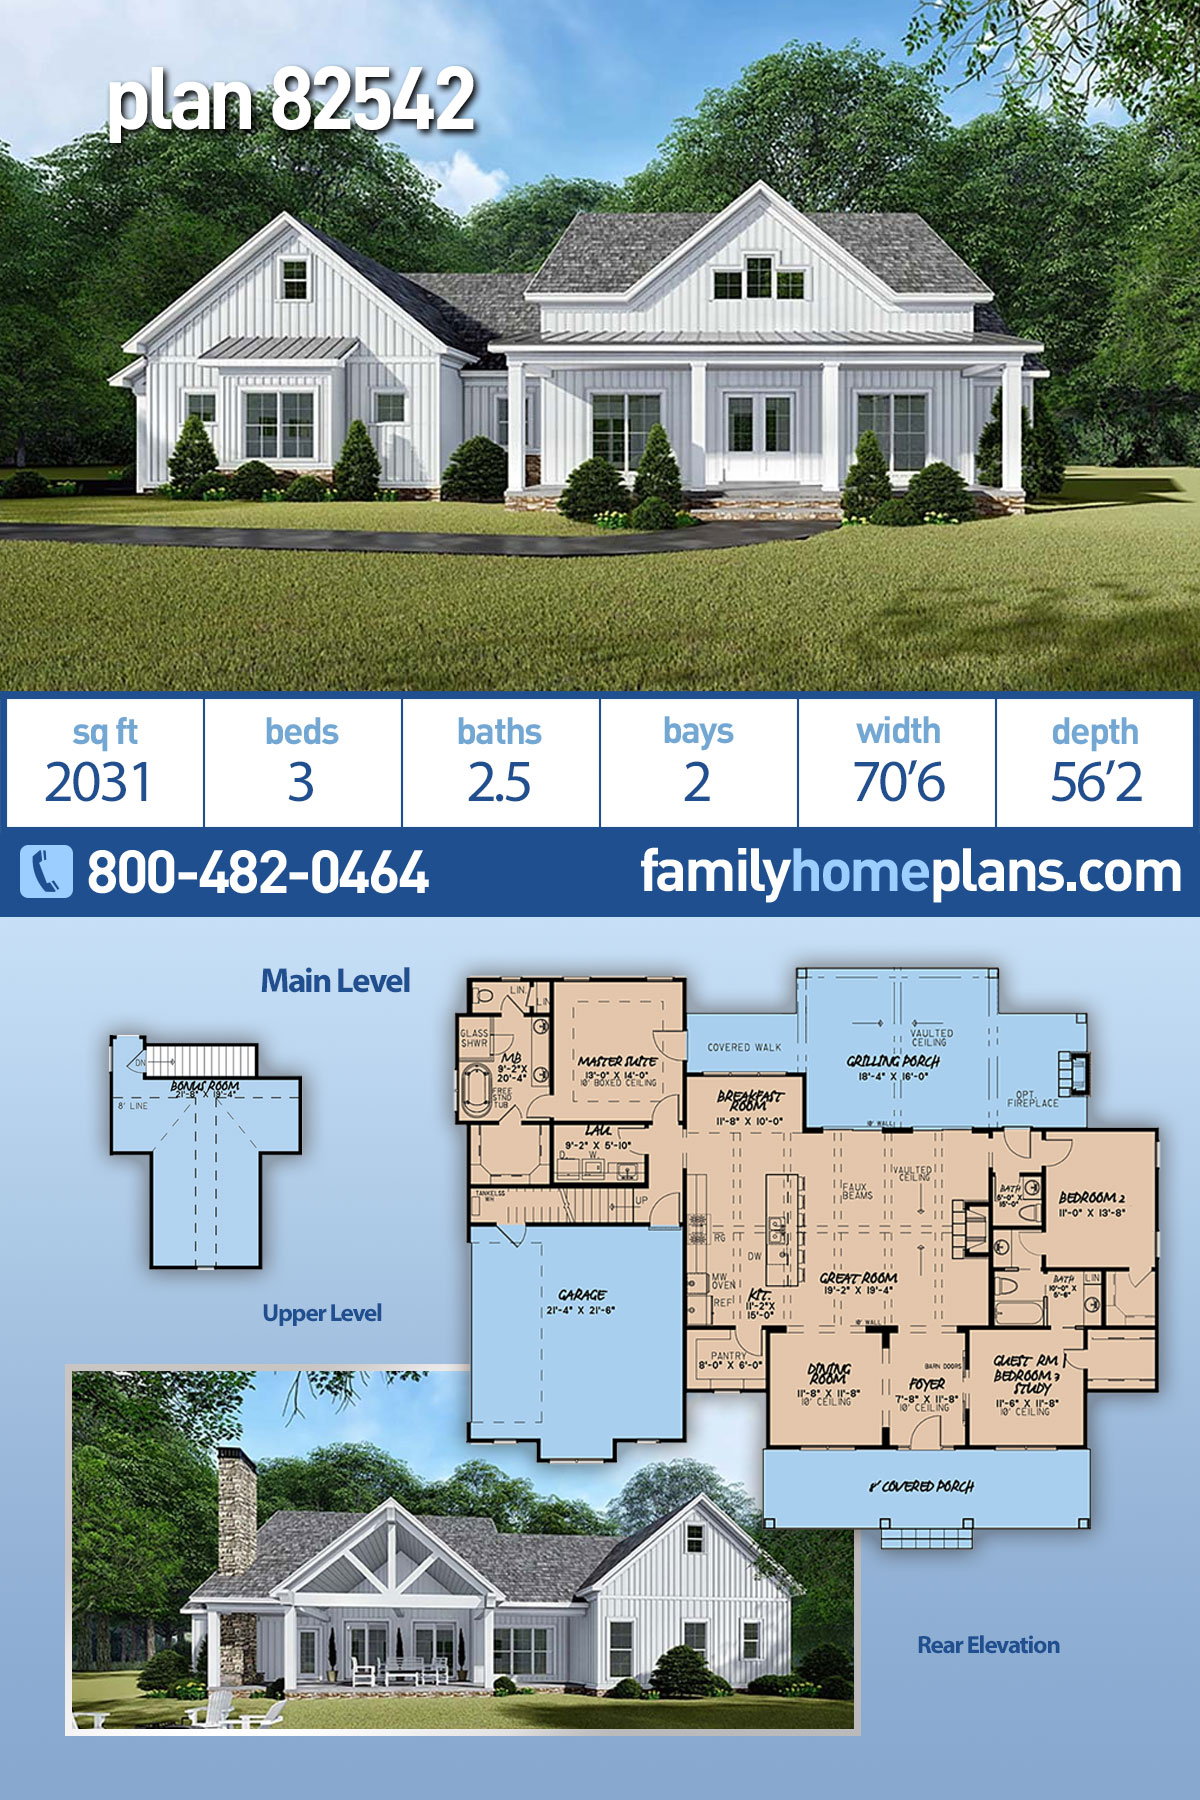 Bungalow, Country, Craftsman, Farmhouse House Plan 82542 with 3 Beds, 3 Baths, 2 Car Garage